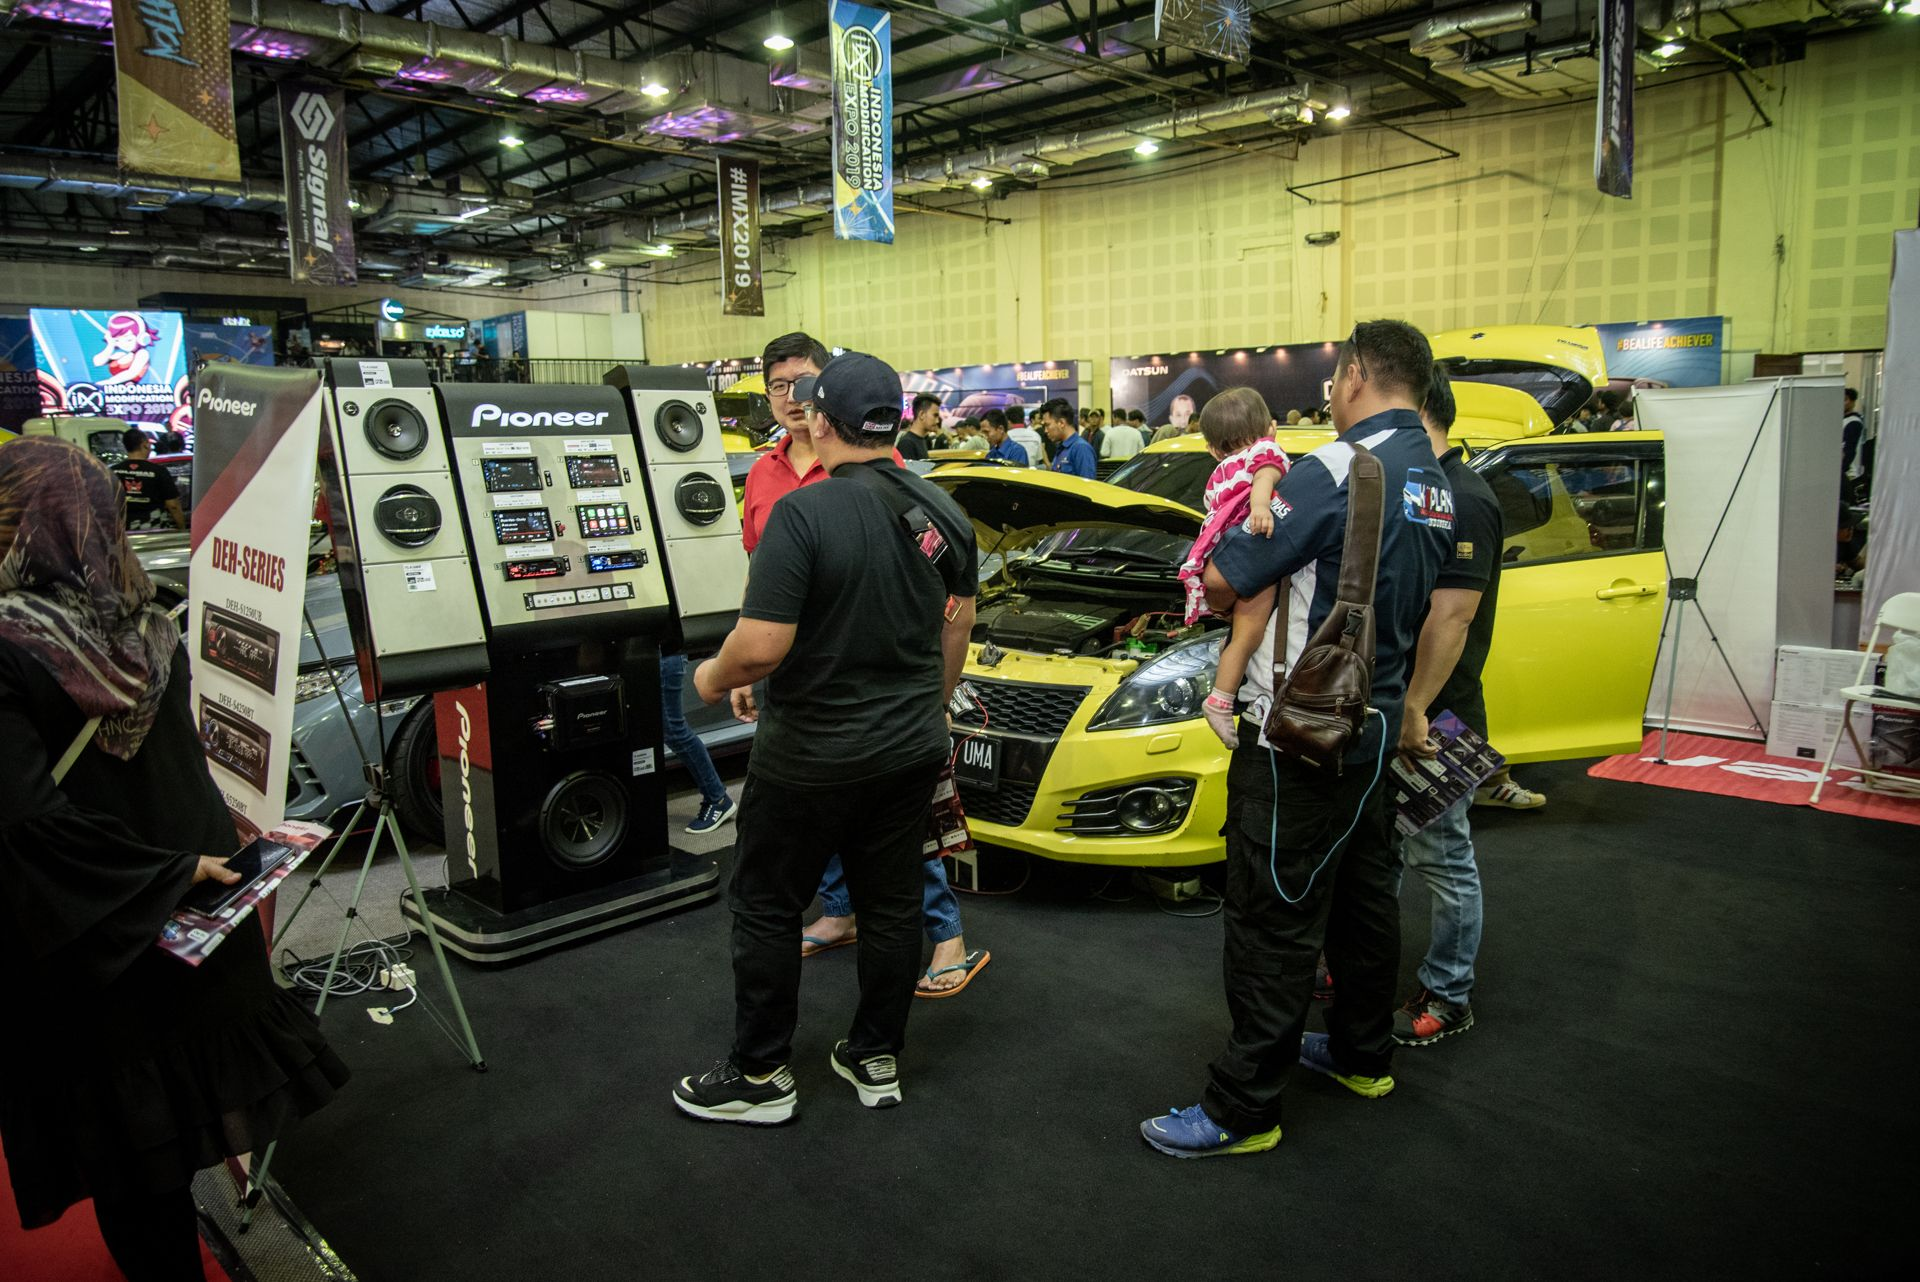 Imx aftermarket expo 2019 (3)